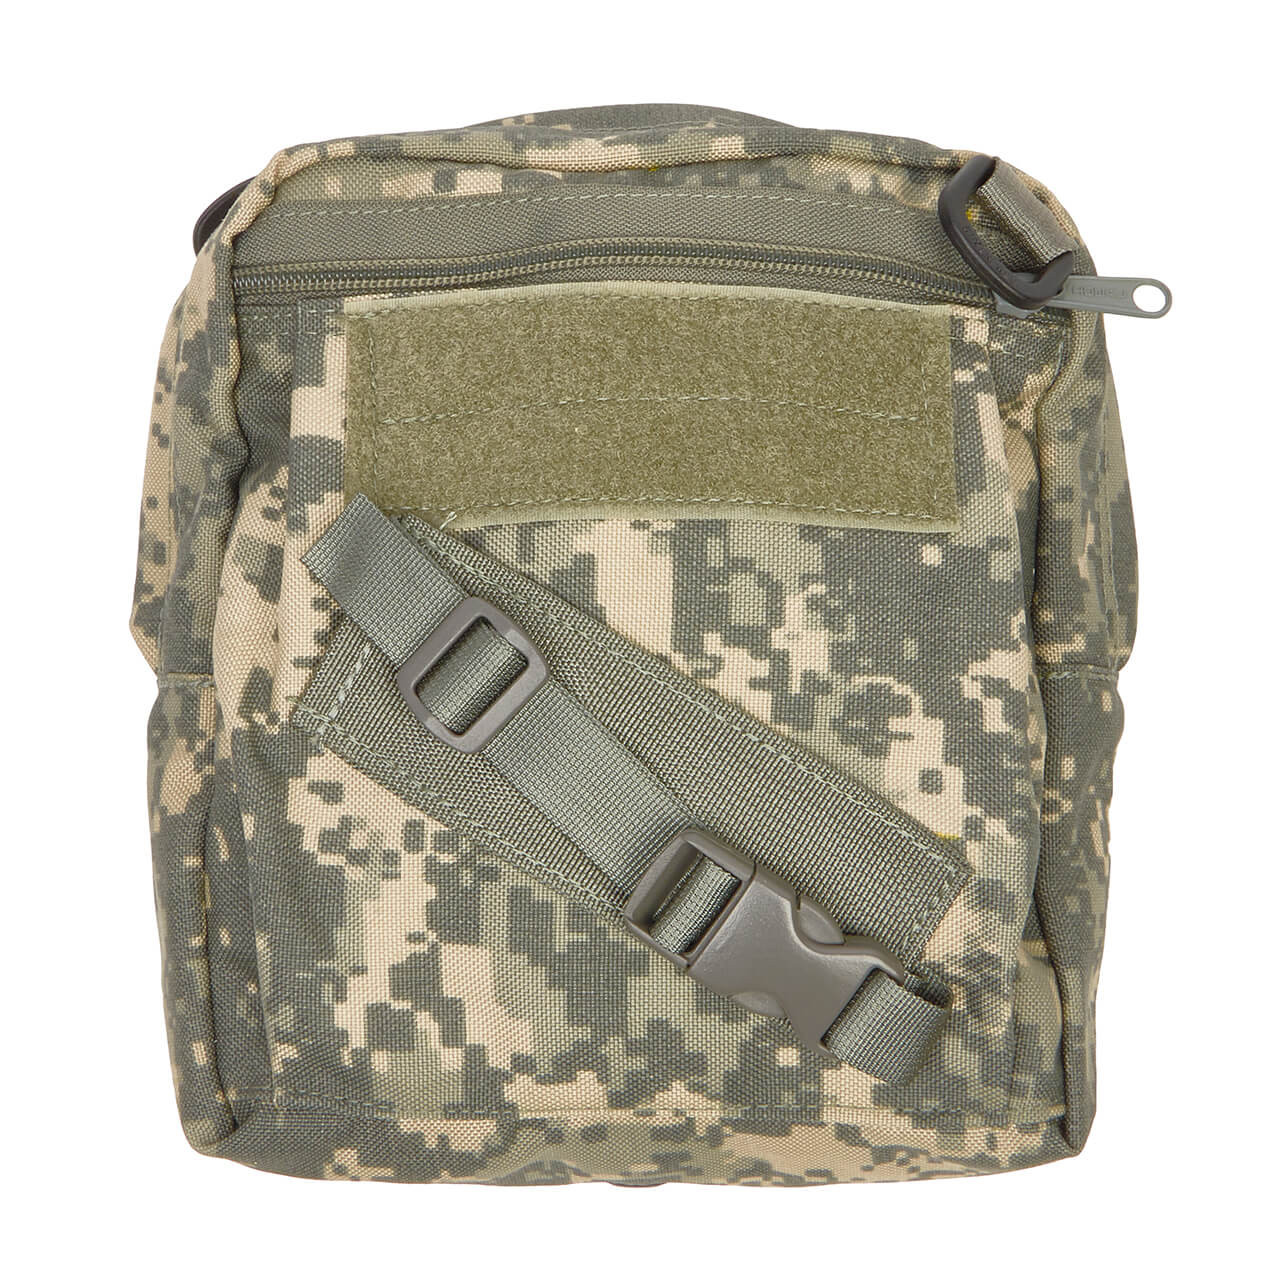 52869 MEDIC'S MEDICAL POUCH